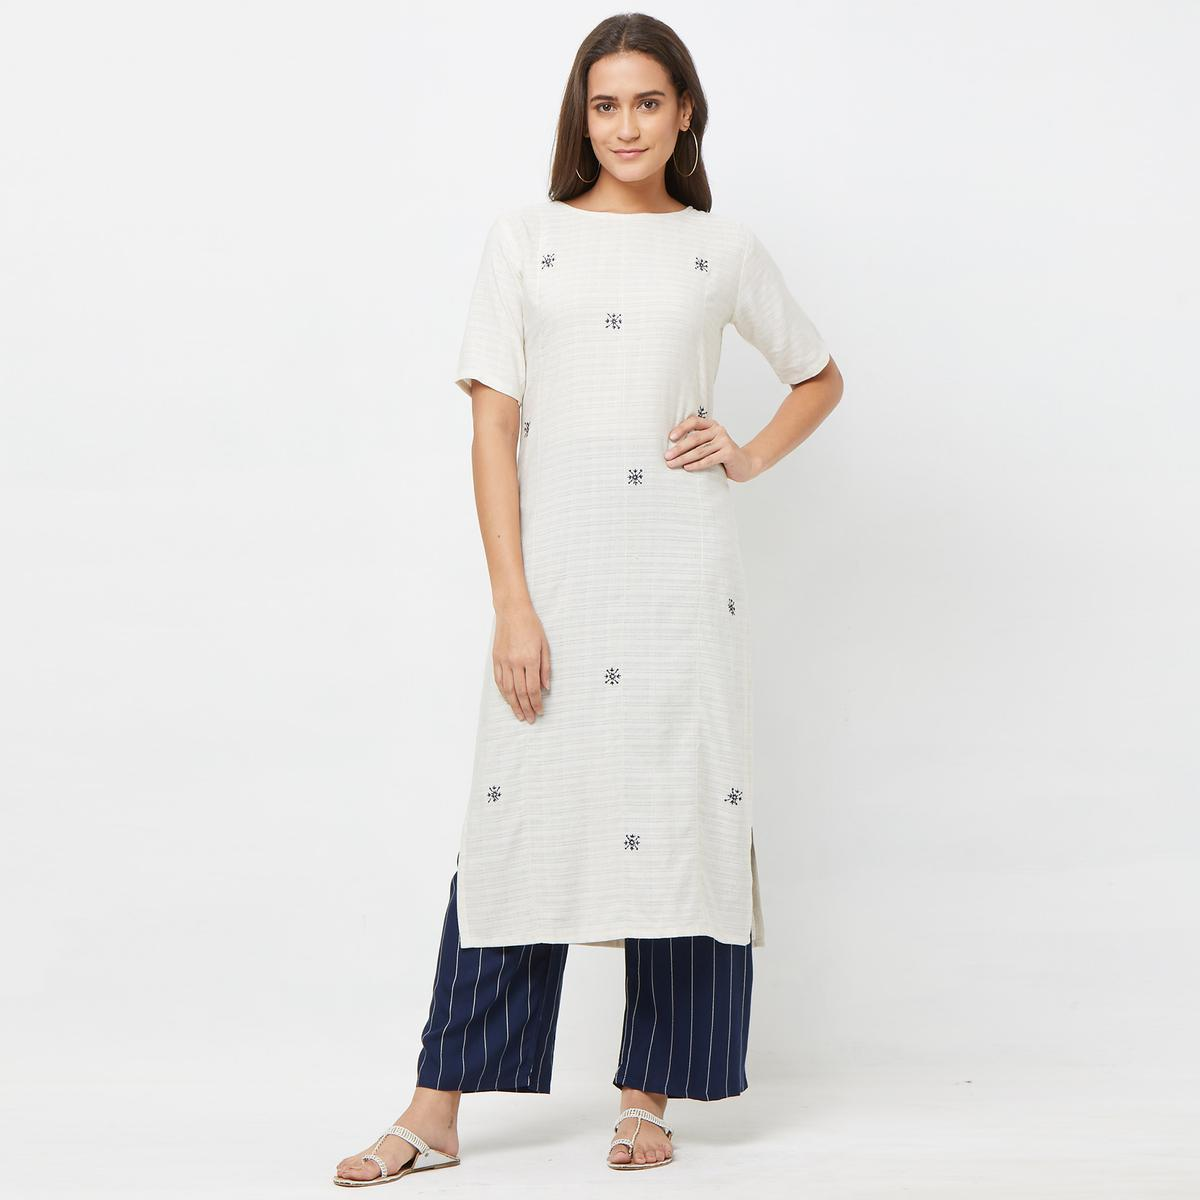 Magnetic White-Navy Blue Colored Casual Printed Cotton Silk Kurti-Bottom Set